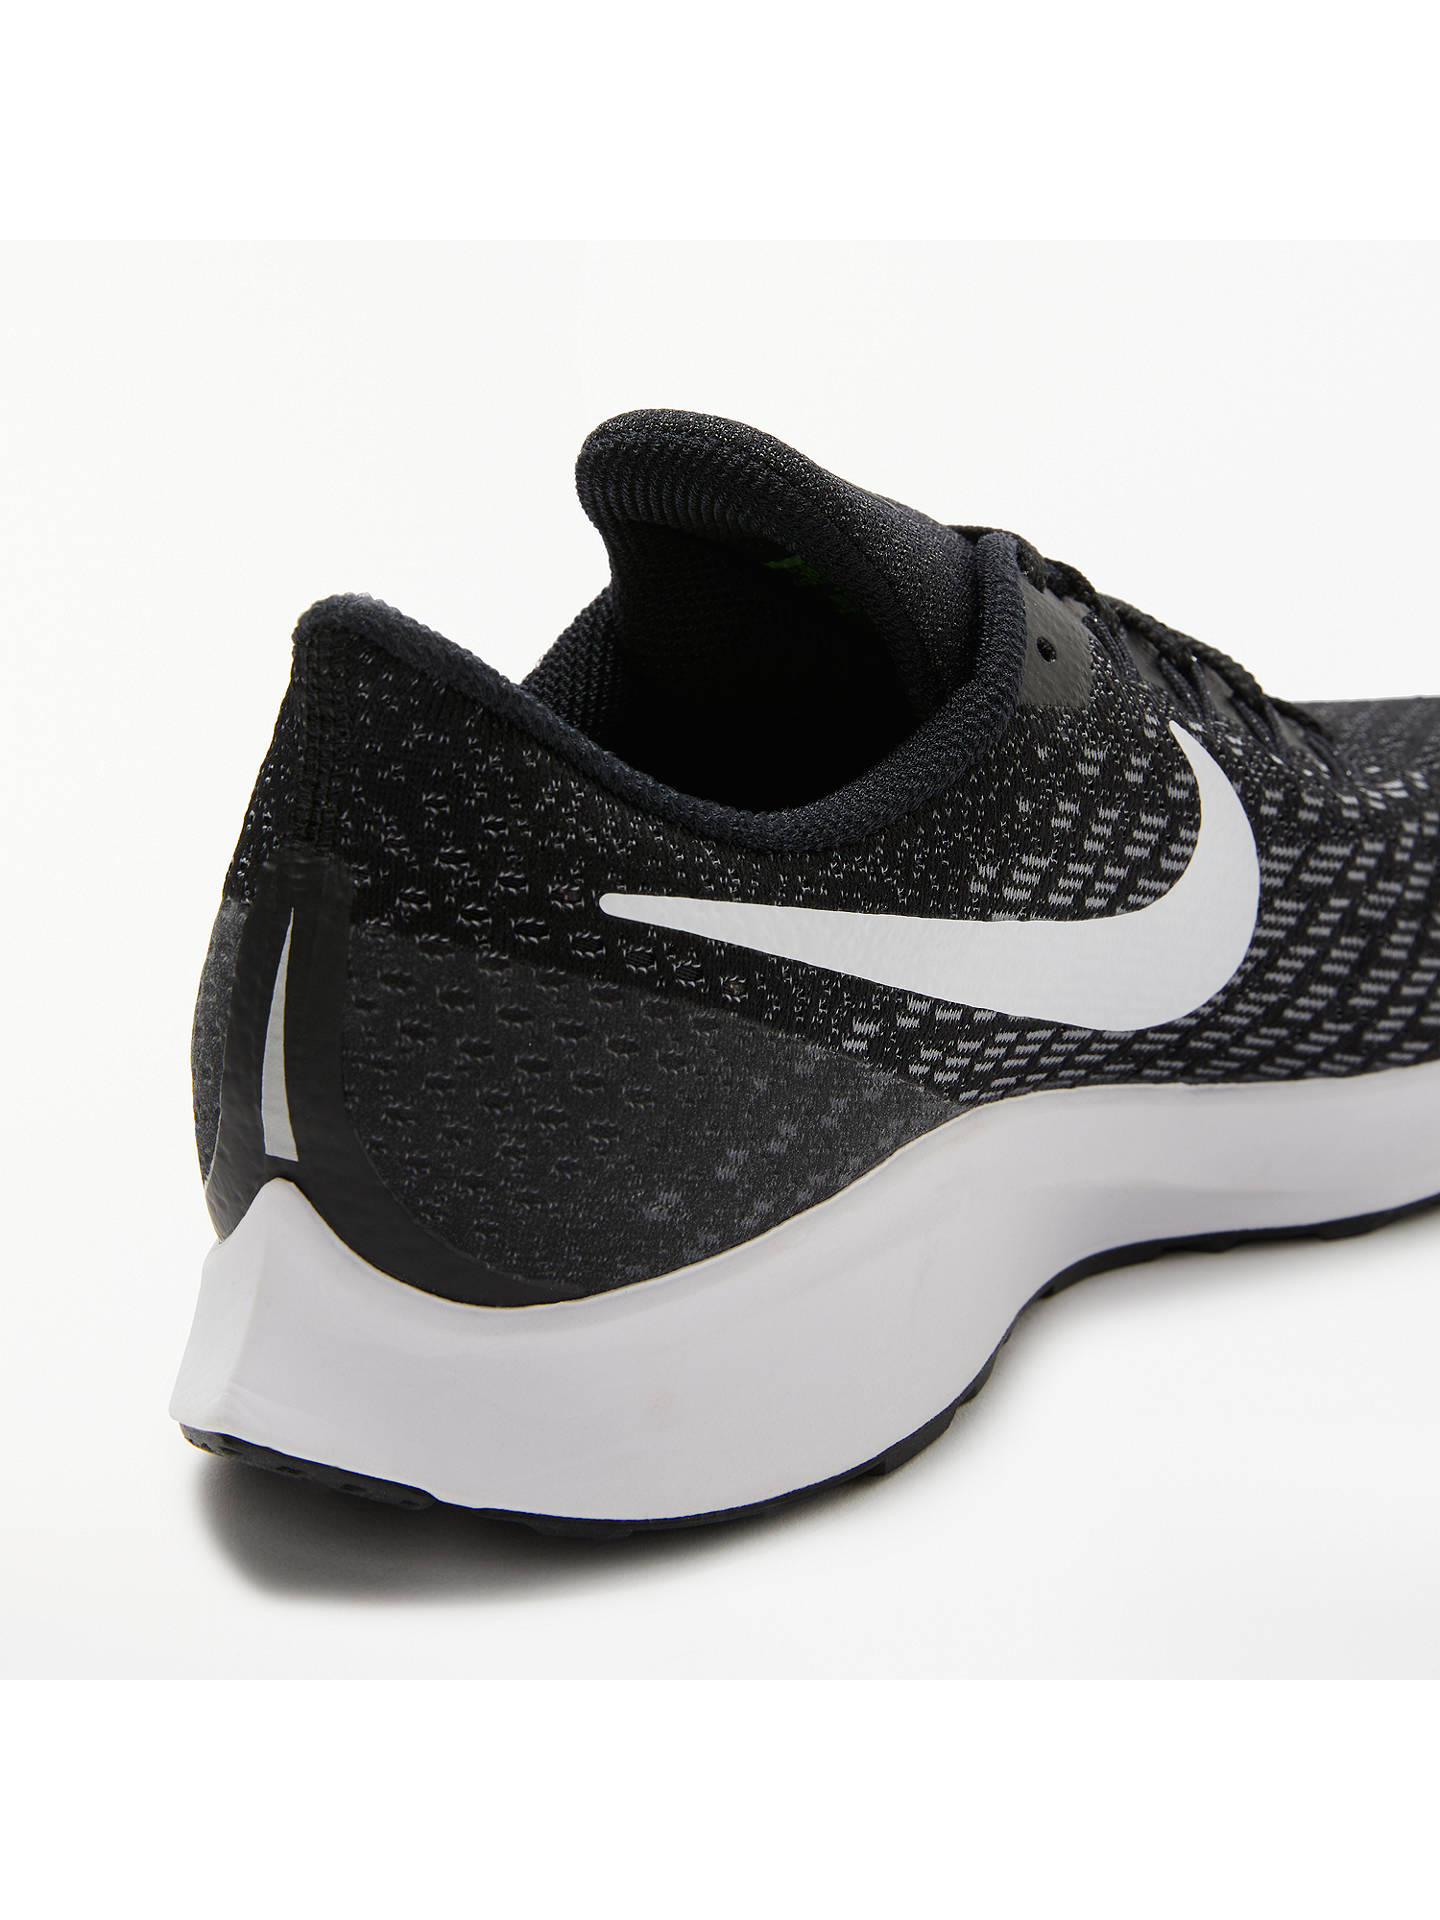 7e83031400b ... Buy Nike Air Zoom Pegasus 35 Women s Running Shoes